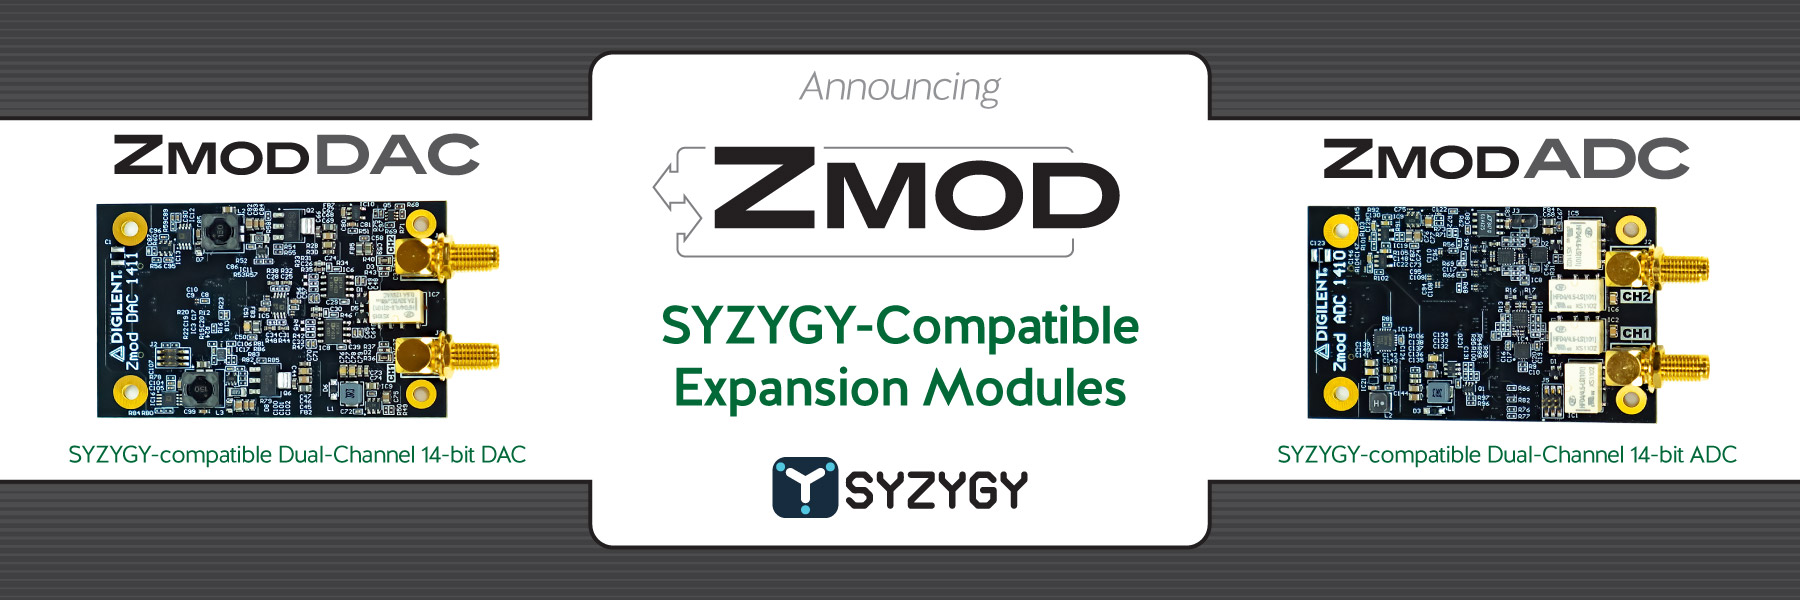 Banner announcing the new SYZYGY-compatible expansion modules, Zmods, available now!